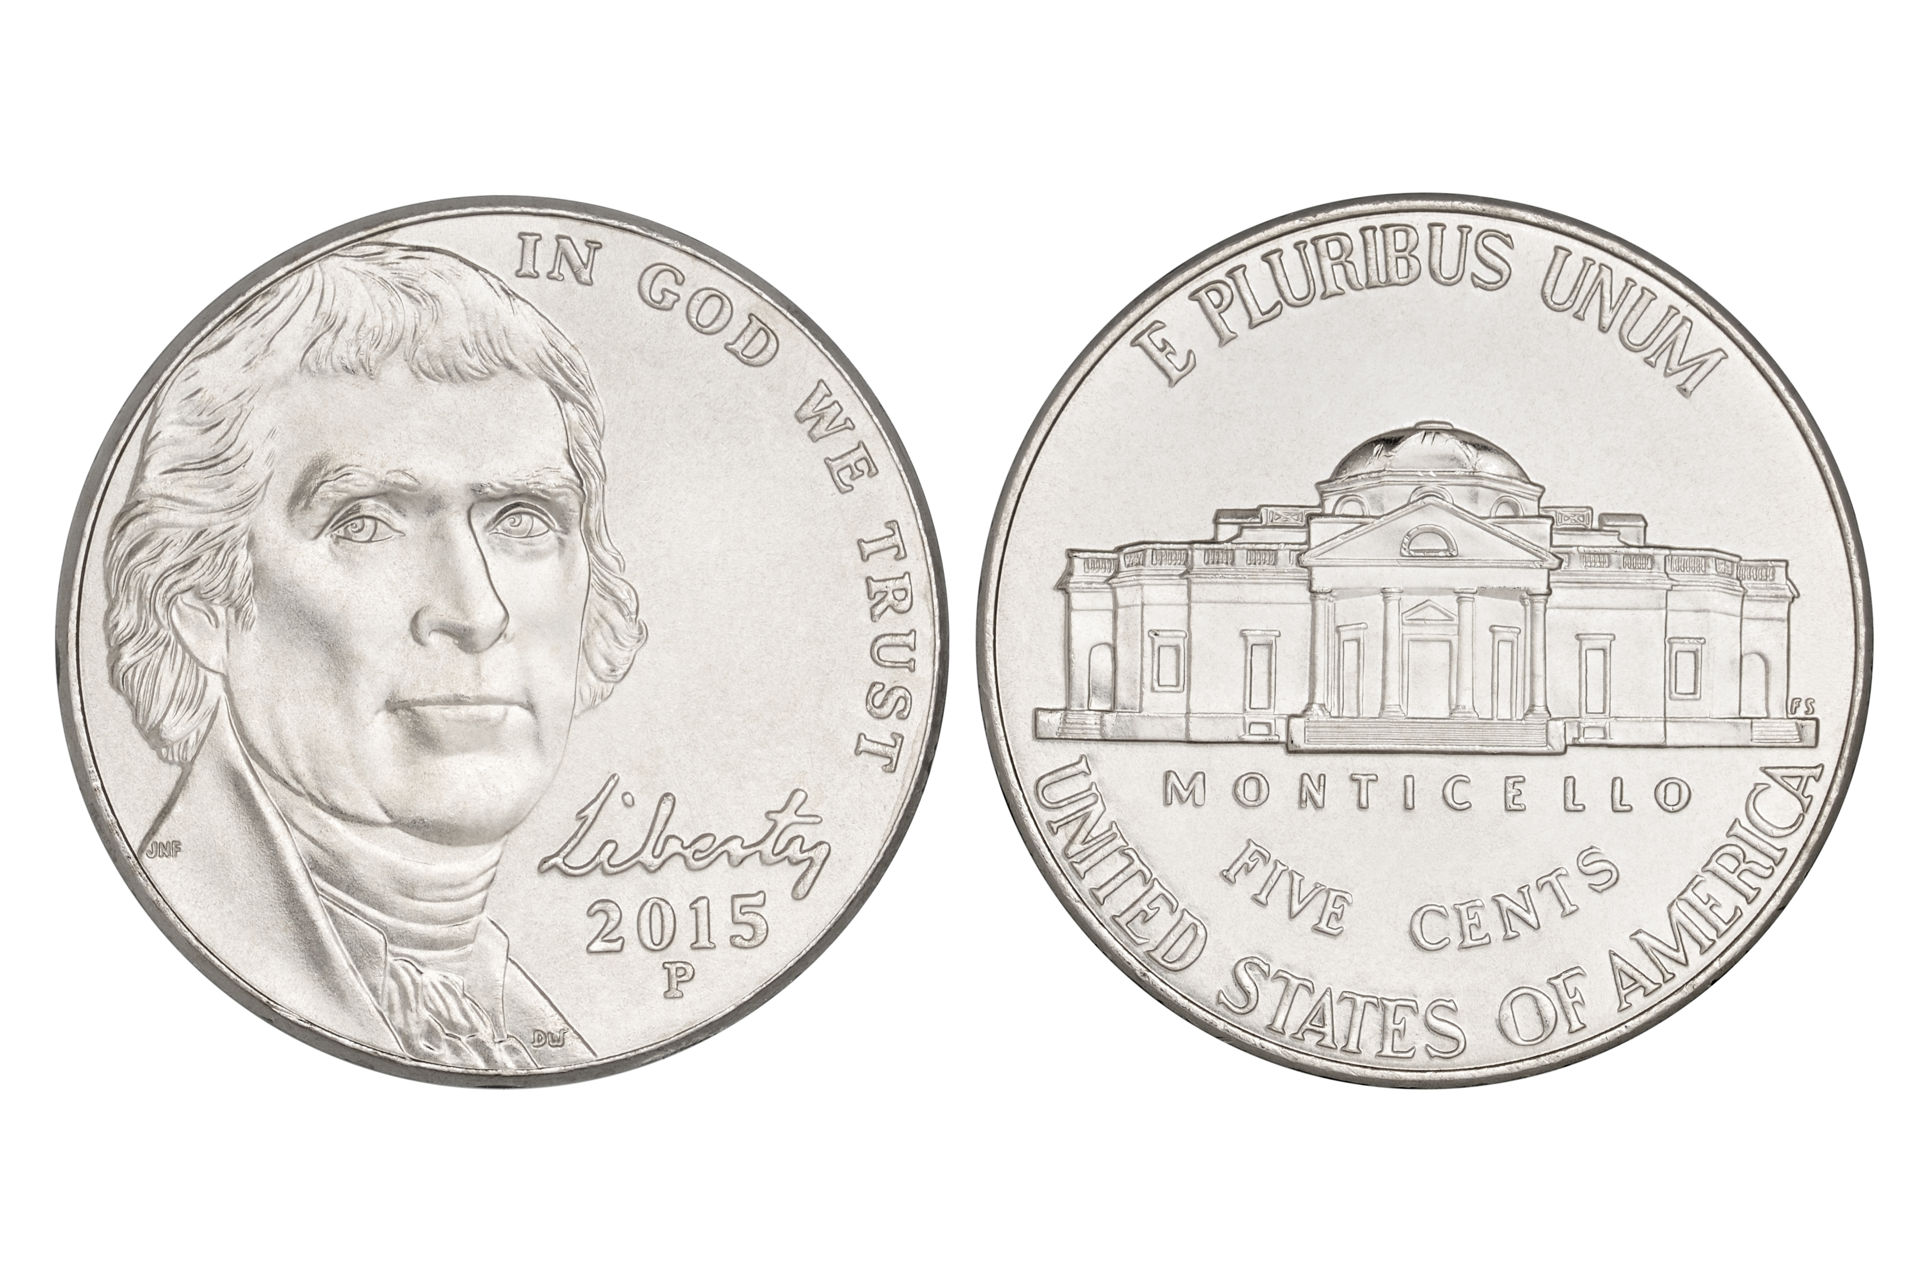 History of the American Nickel Coin